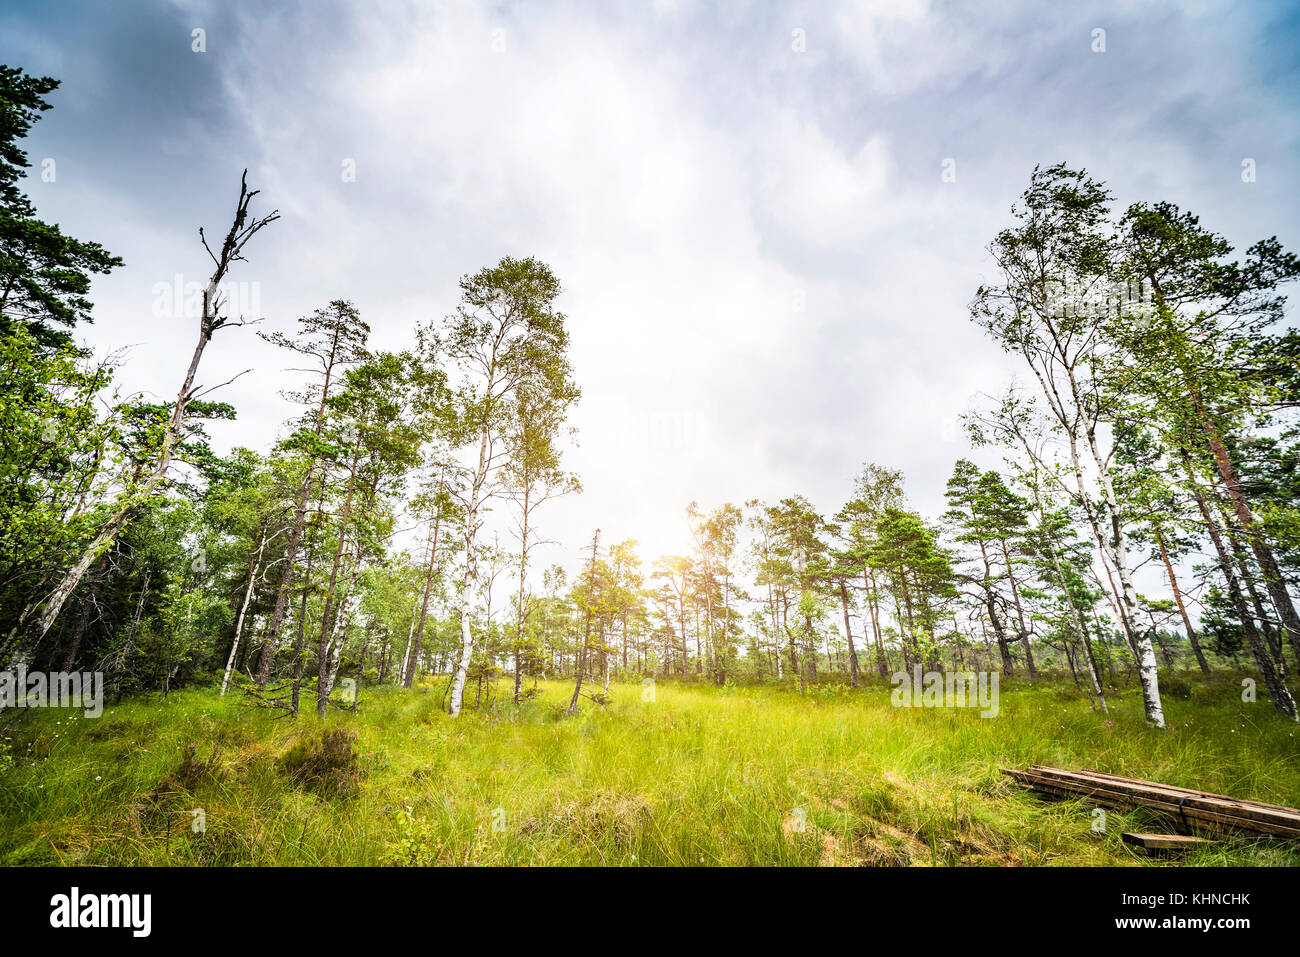 Sun shining through the trees in a clearing in a green forest in the spring - Stock Image